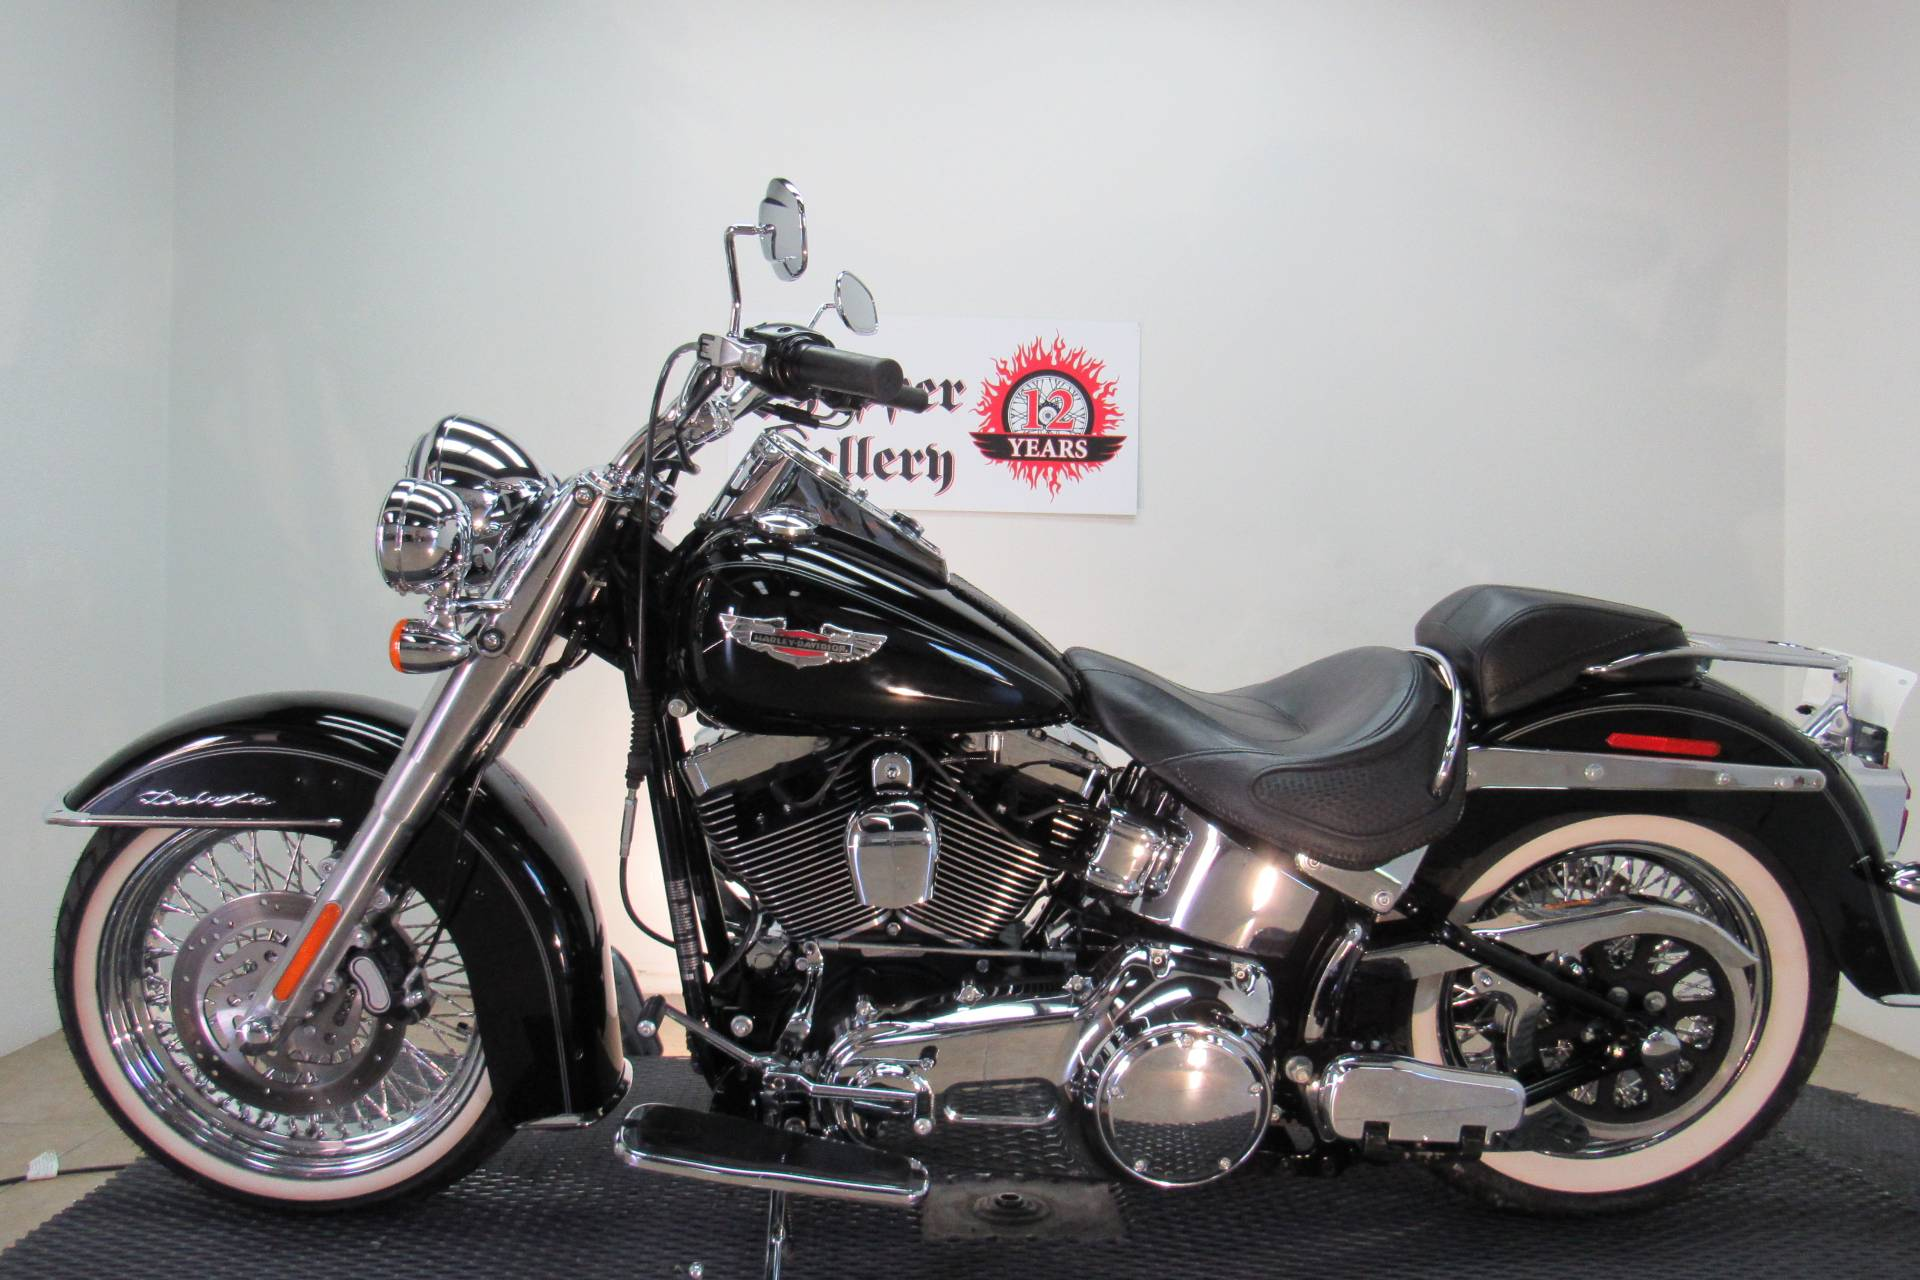 2009 Harley-Davidson Softail Deluxe in Temecula, California - Photo 2